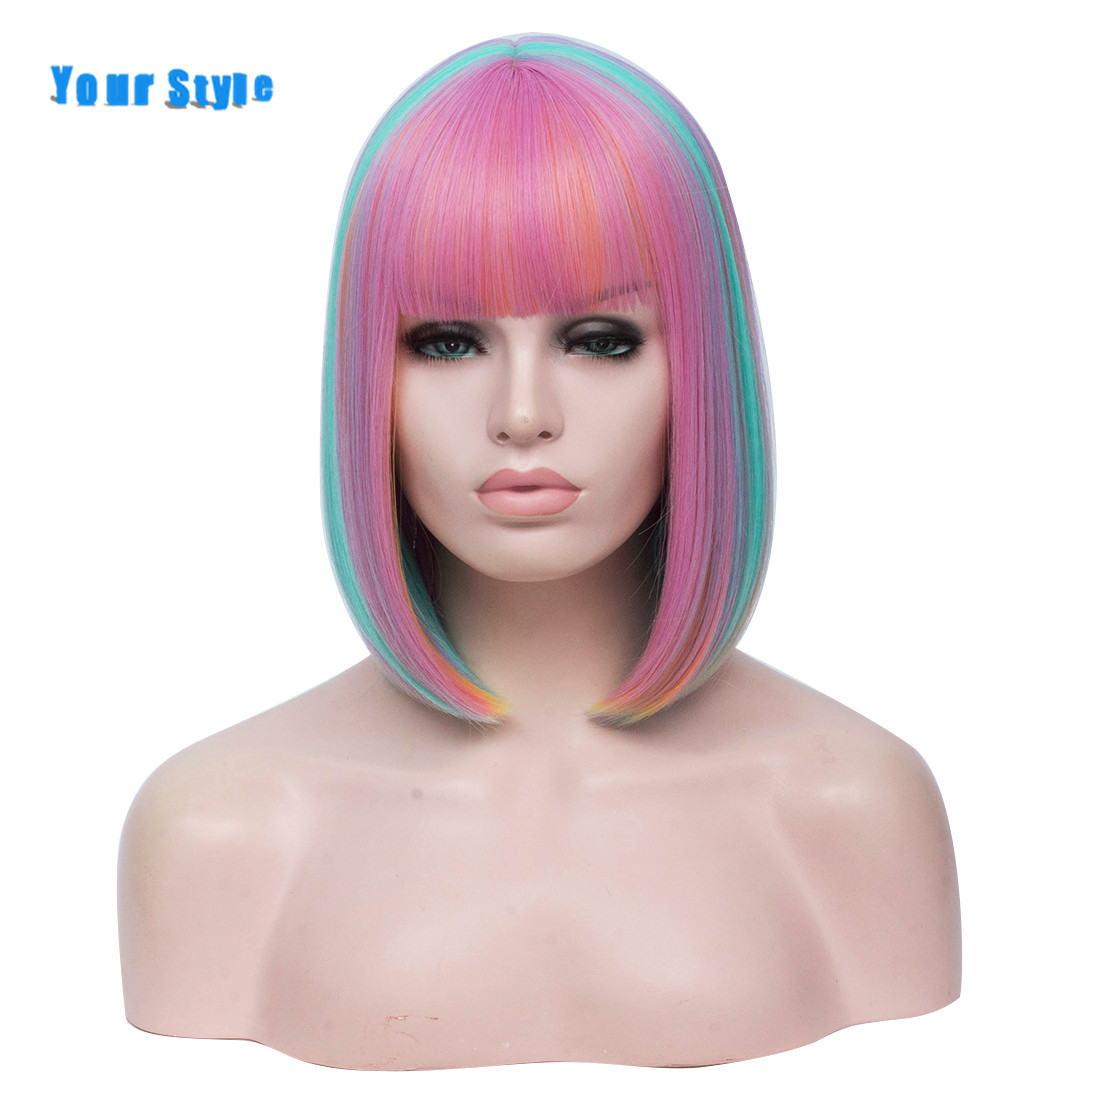 Your Style 5 Colors Short Straight BOB Cosplay Wigs Women Girls Rainbow Mixed Color Pink Red Green Blue High Temperature Fiber